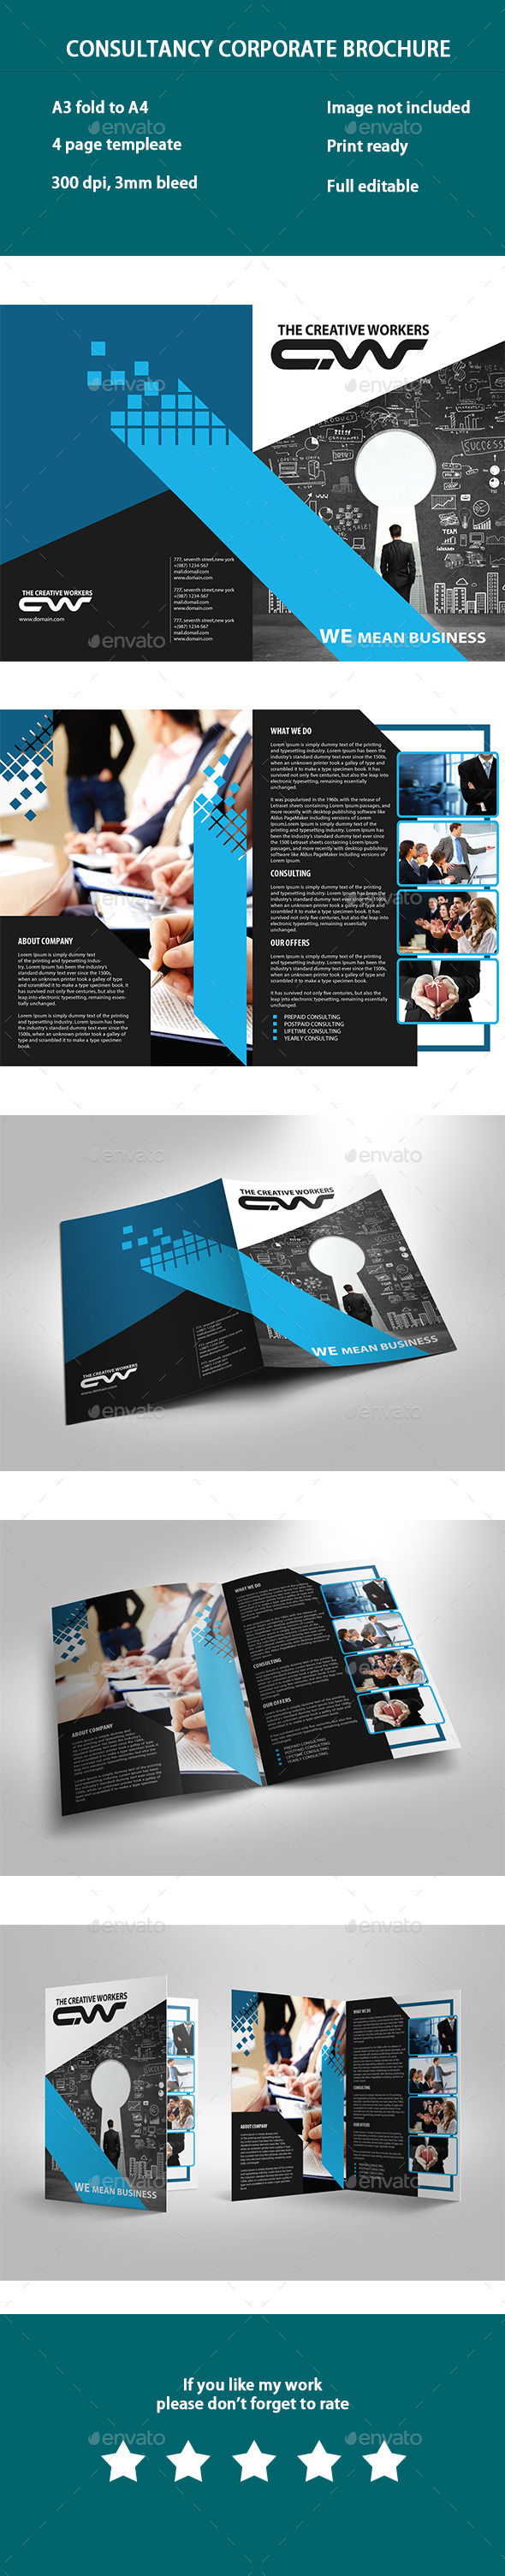 Consultancy Business Brochure - Corporate Brochures